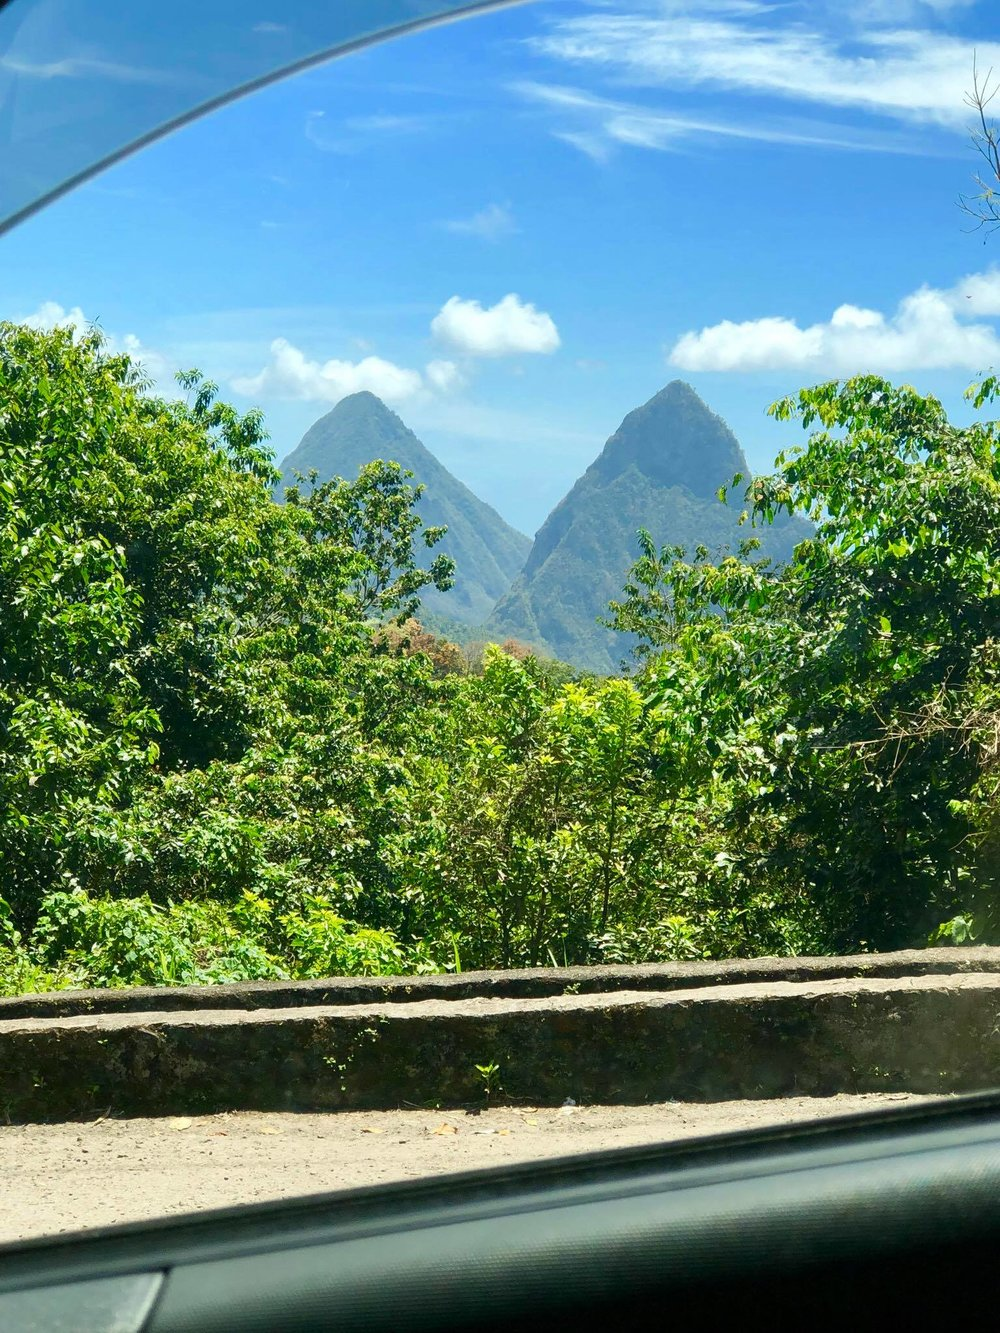 Kach Solo Travels in 2019 Beautiful St Lucia26.jpg